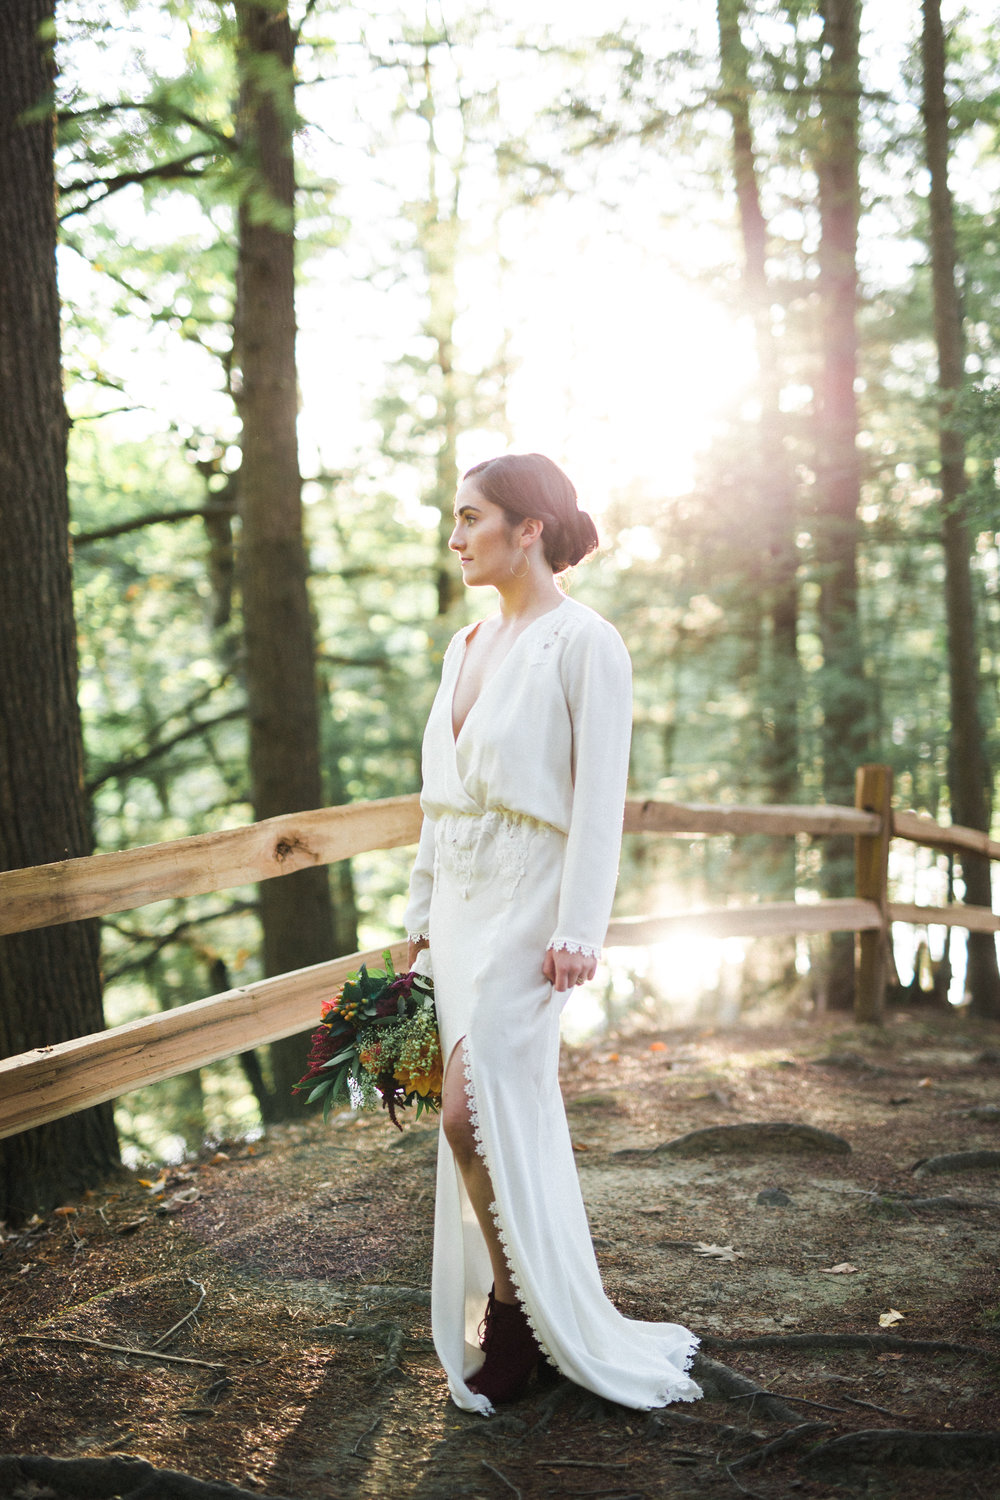 Massachusetts Woods Elopement_meg haley photographs_036.jpg